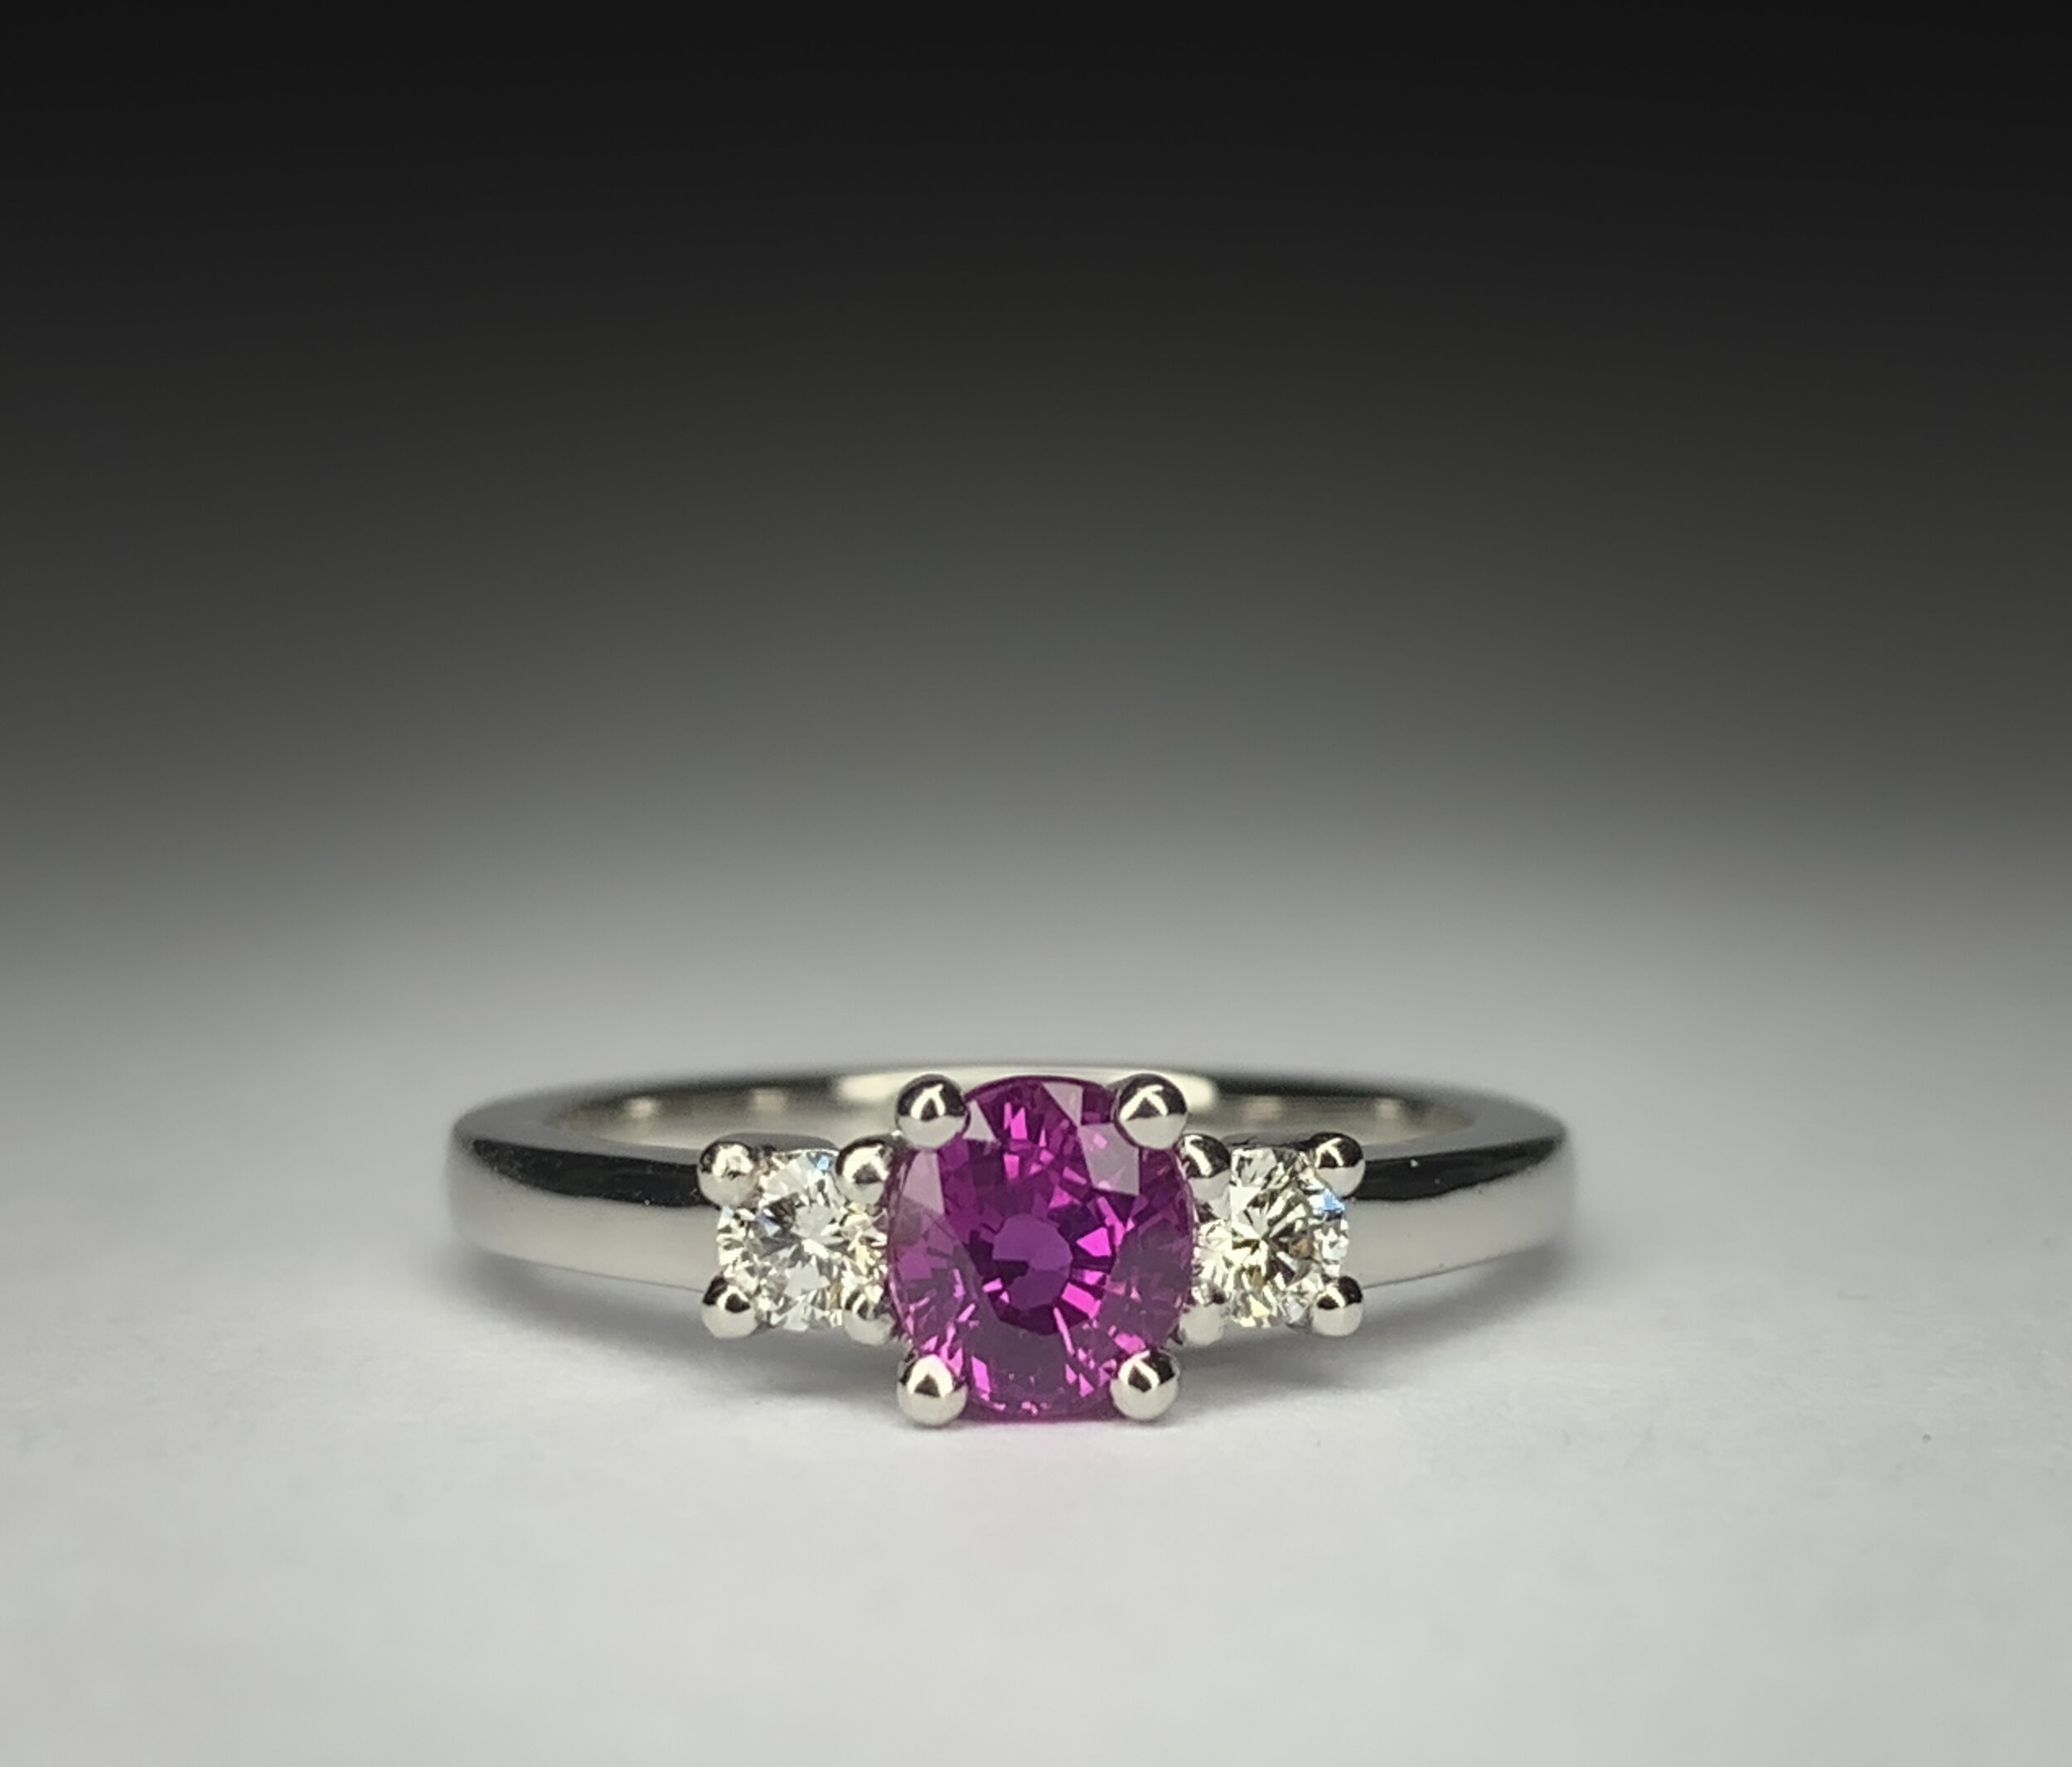 Platinum mounted 0.74ct oval pink sapphire and diamond 3 stone ring. Made in Chichester, England.